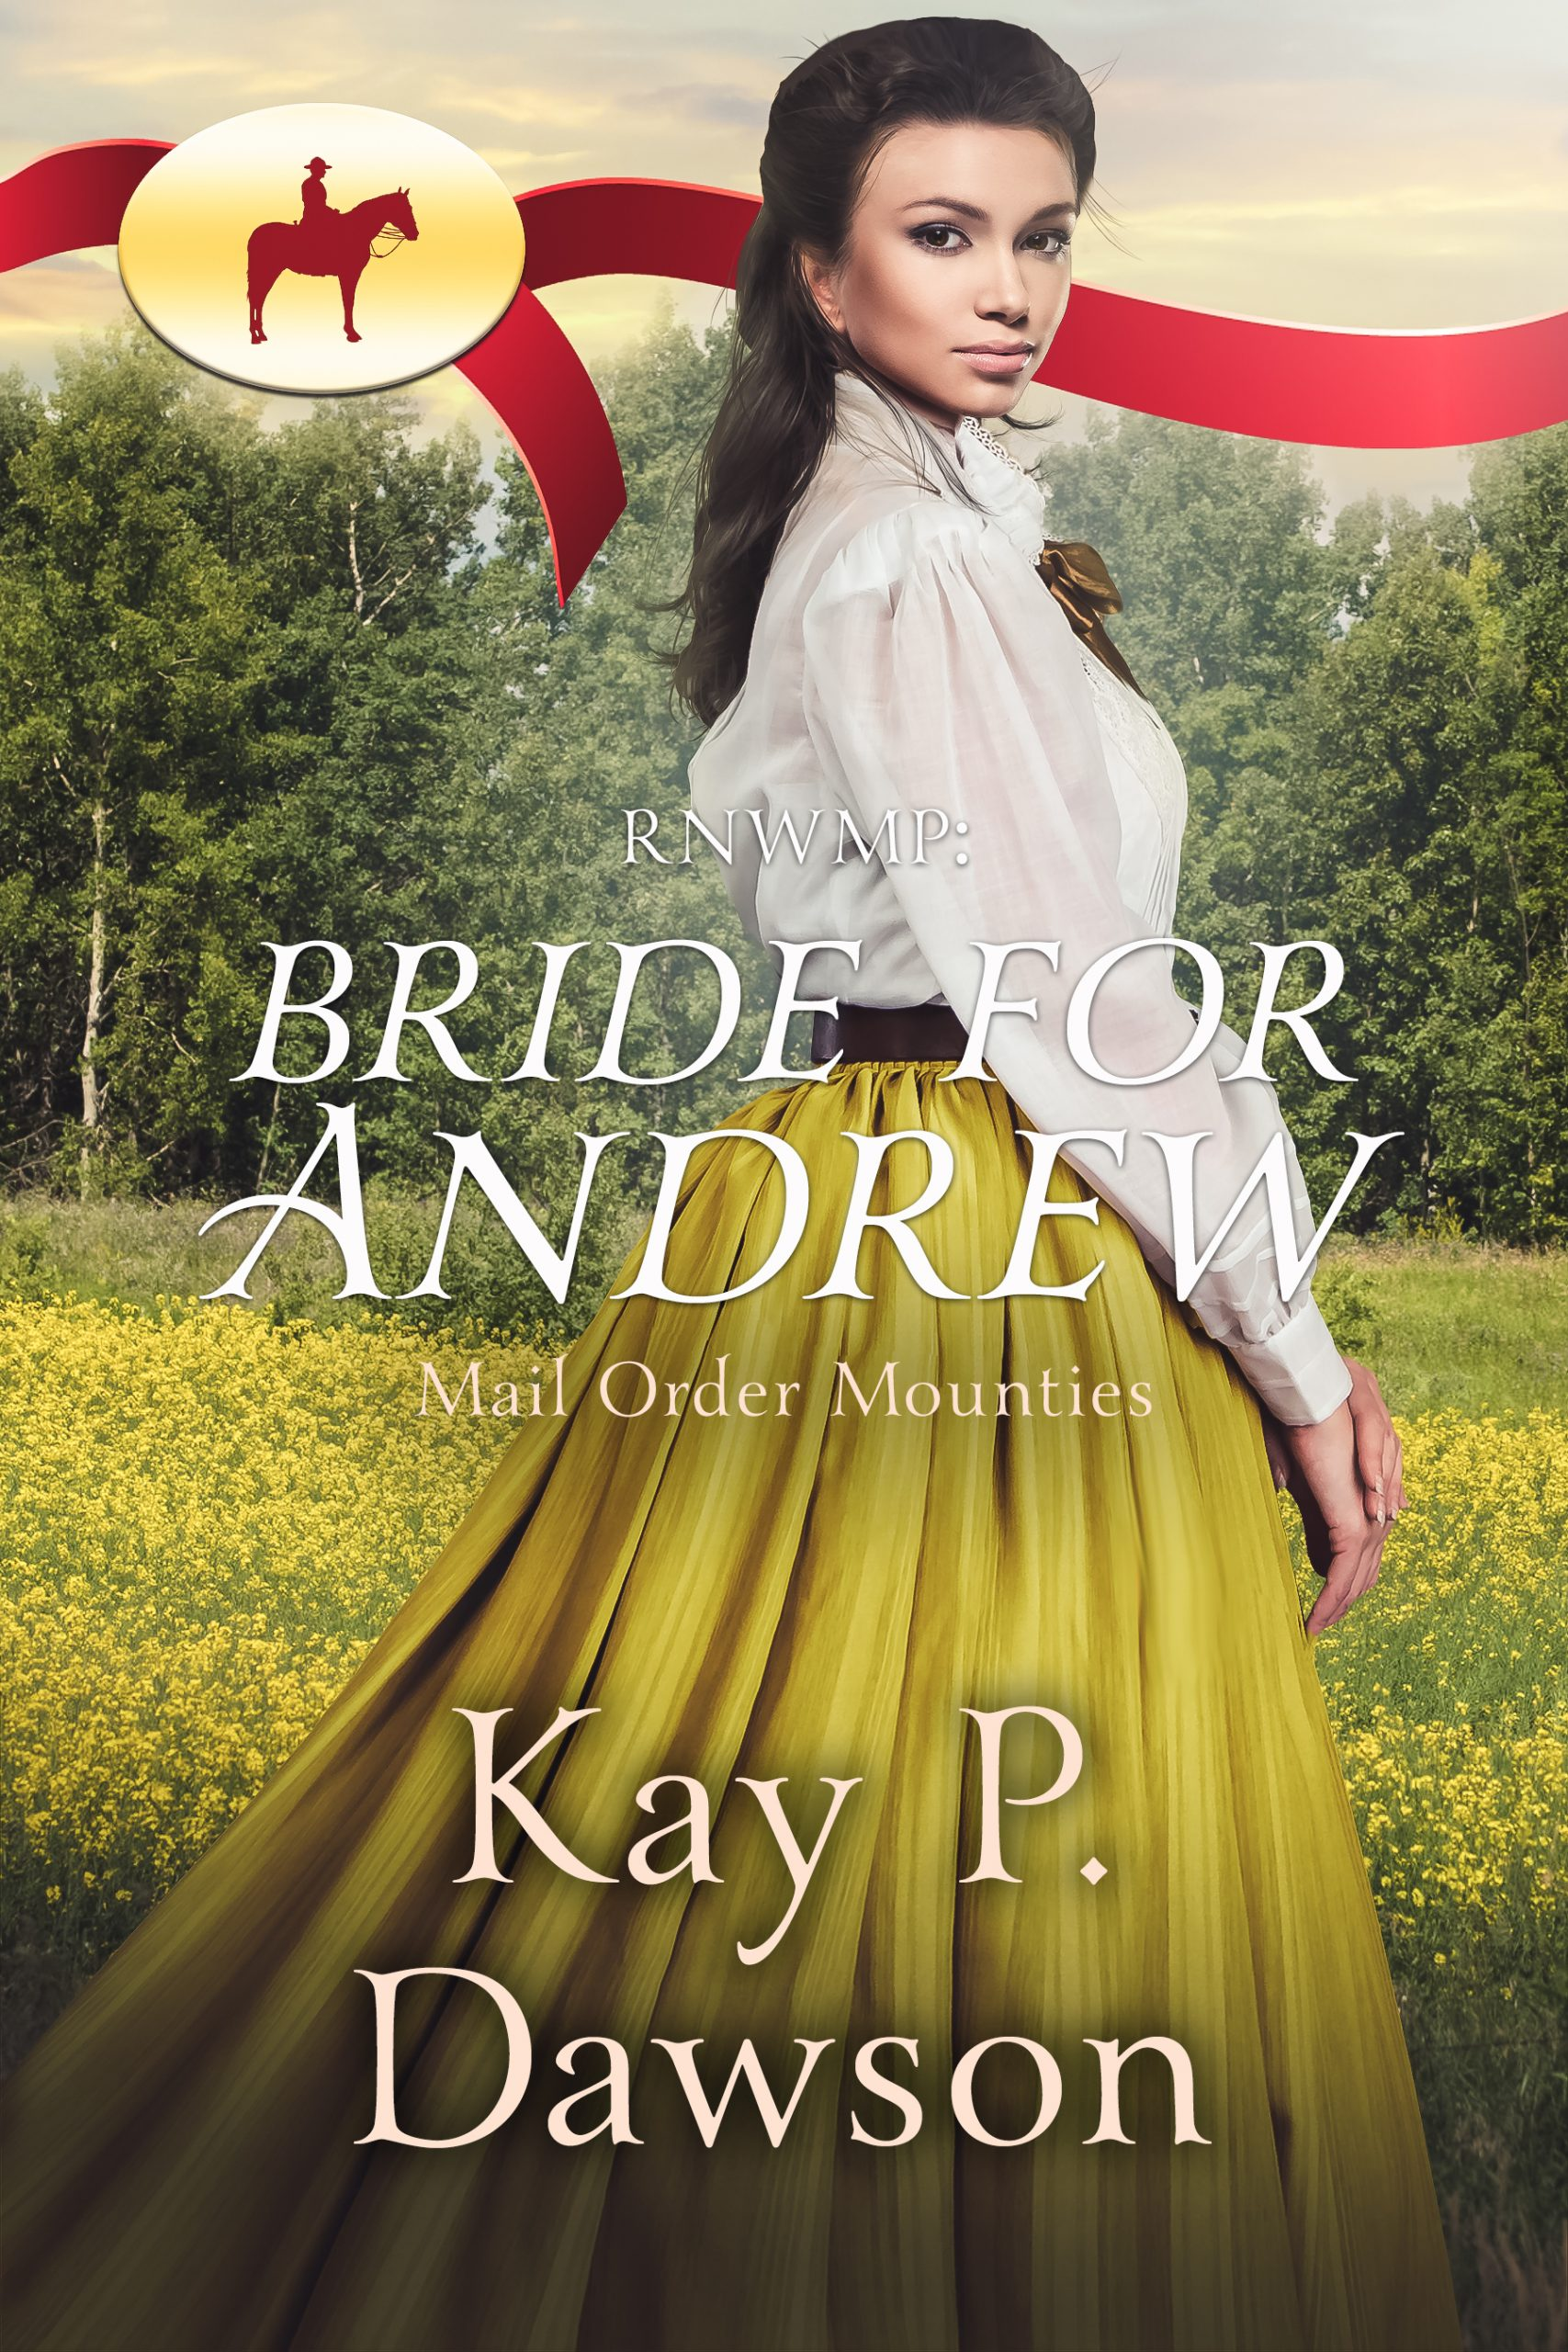 Bride for Andrew - Mail Order Mounties